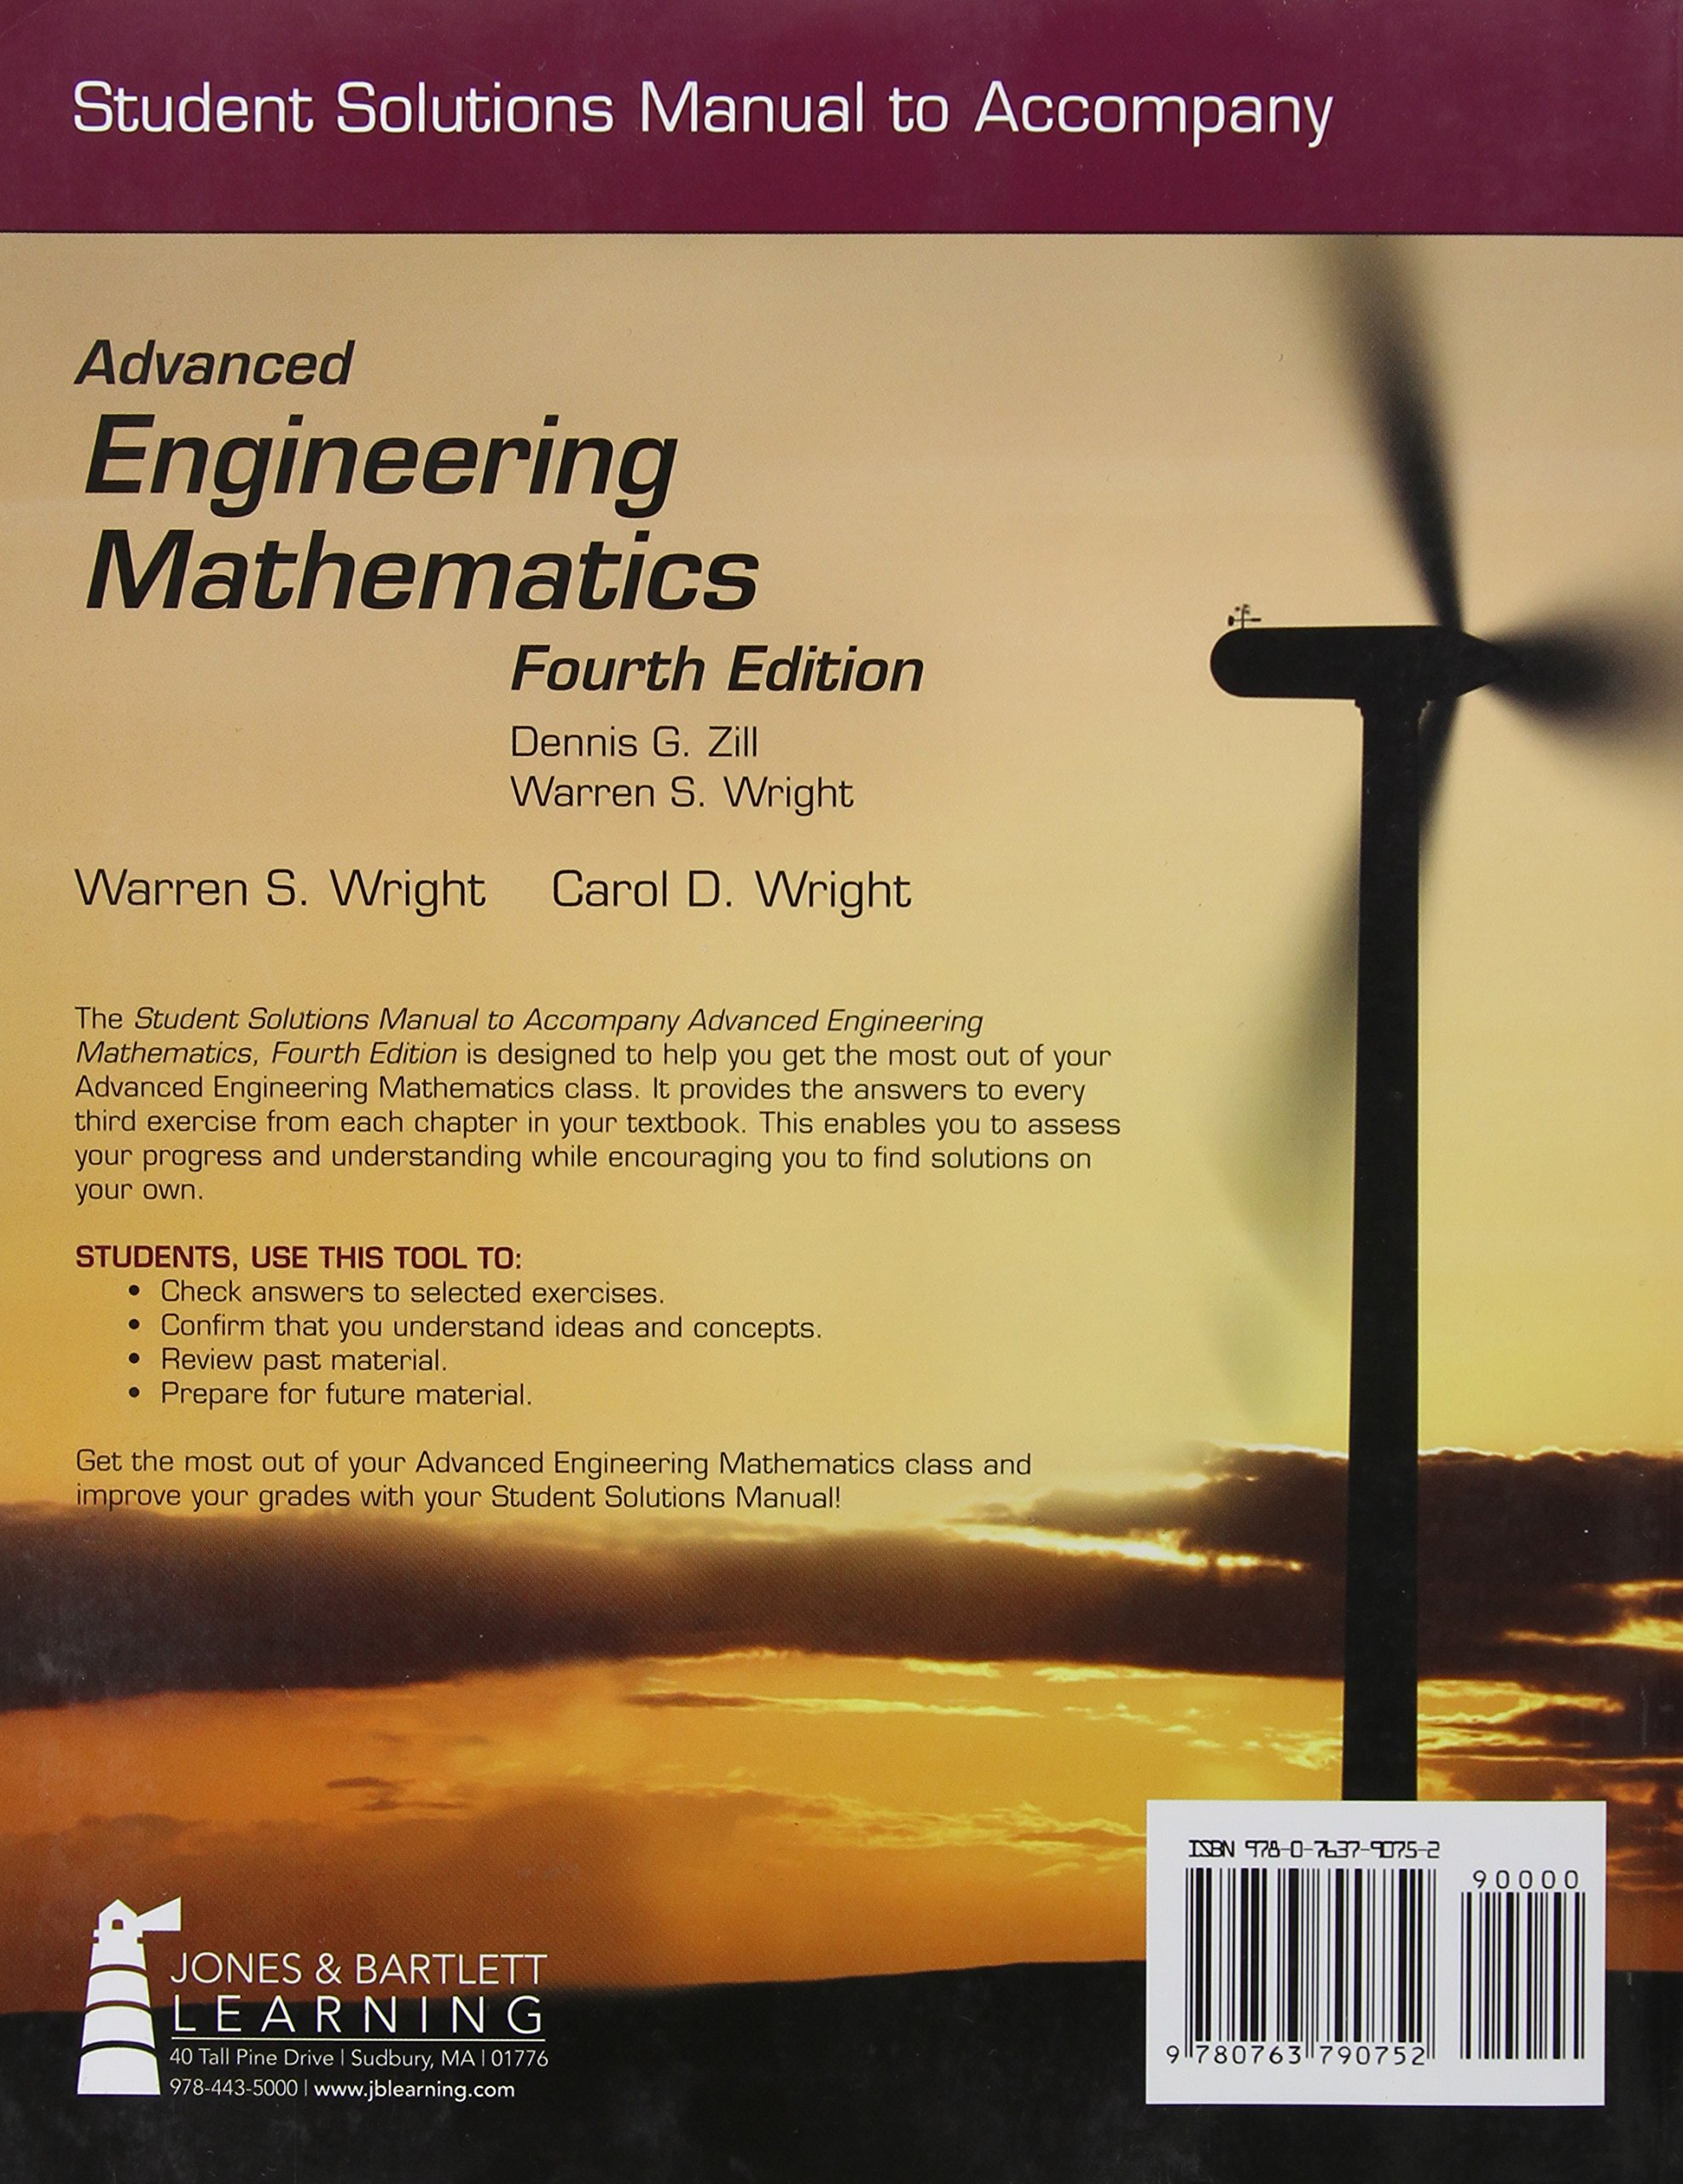 Student Solutions Manual To Accompany Advanced Engineering Mathematics:  Warren S. Wright: 9780763790752: Amazon.com: Books